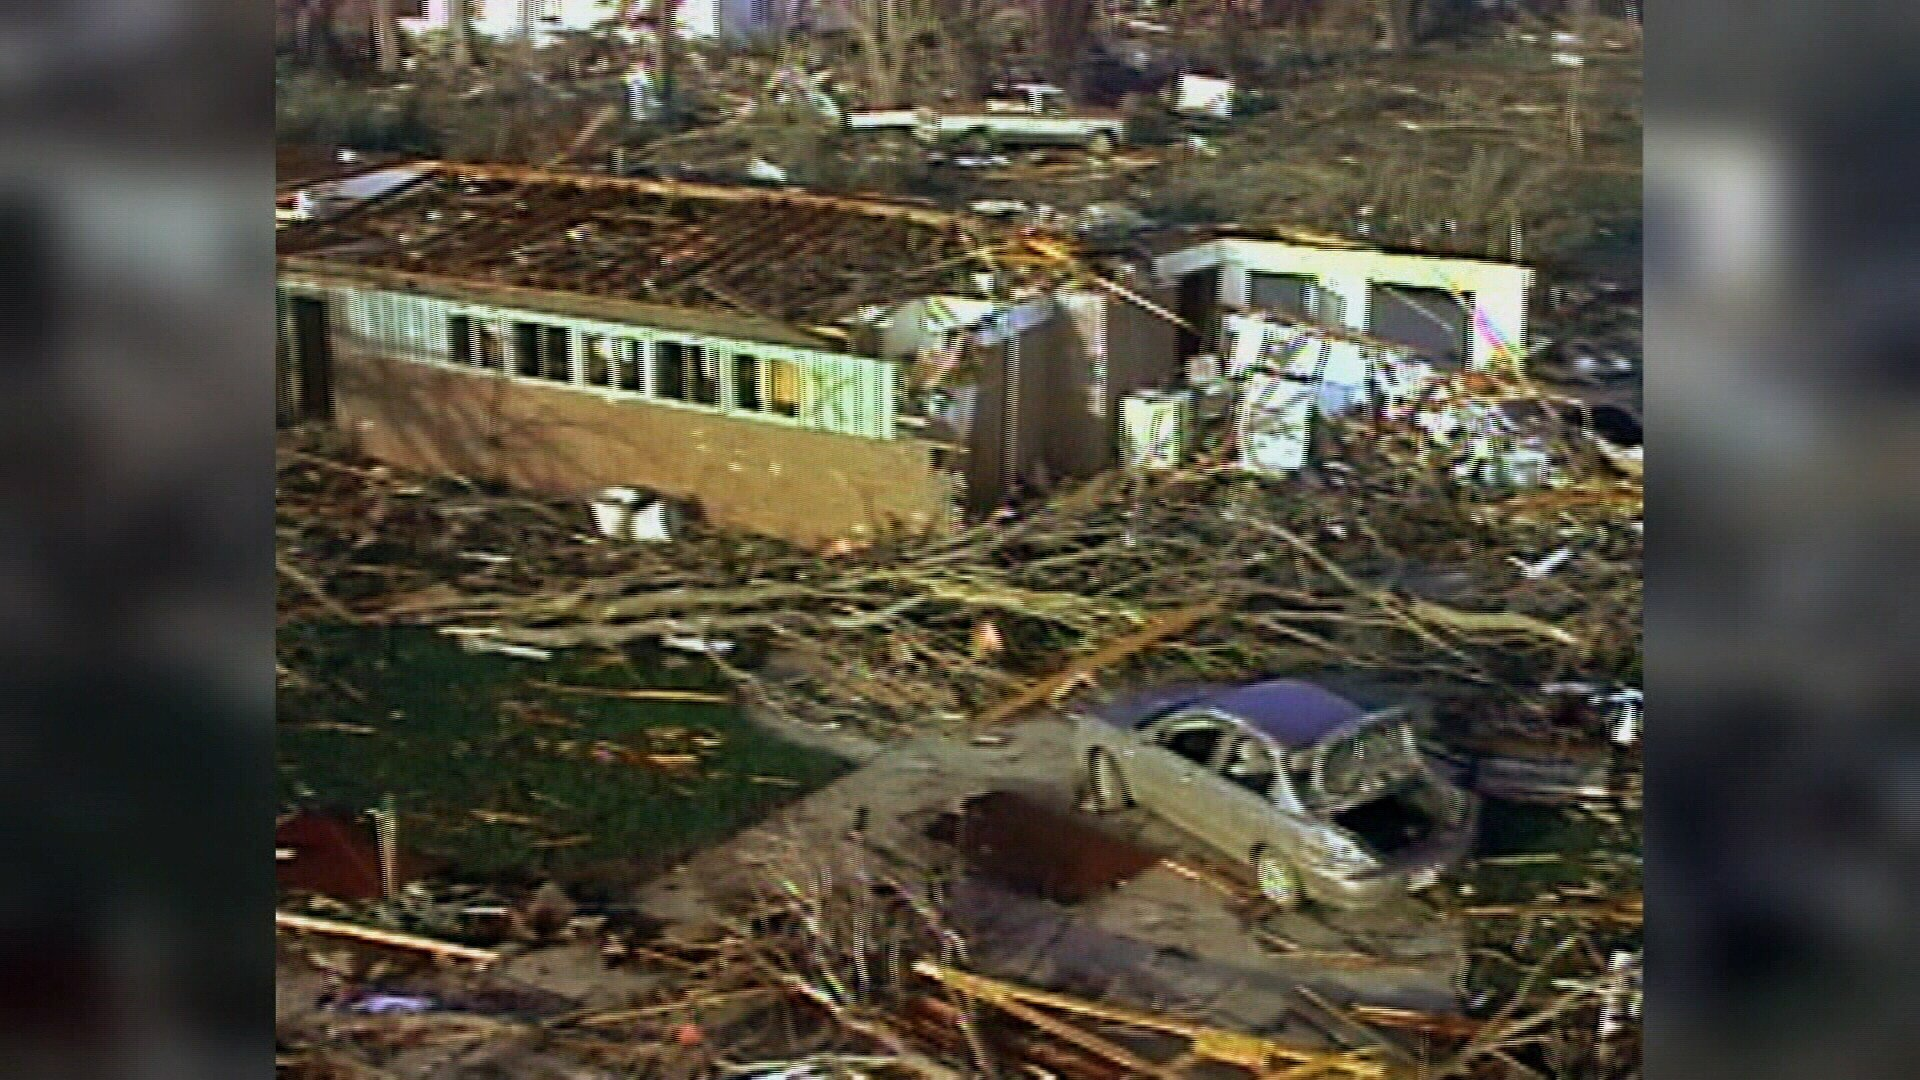 March 2007 - A tornado hit the small town of Holly, Colorado